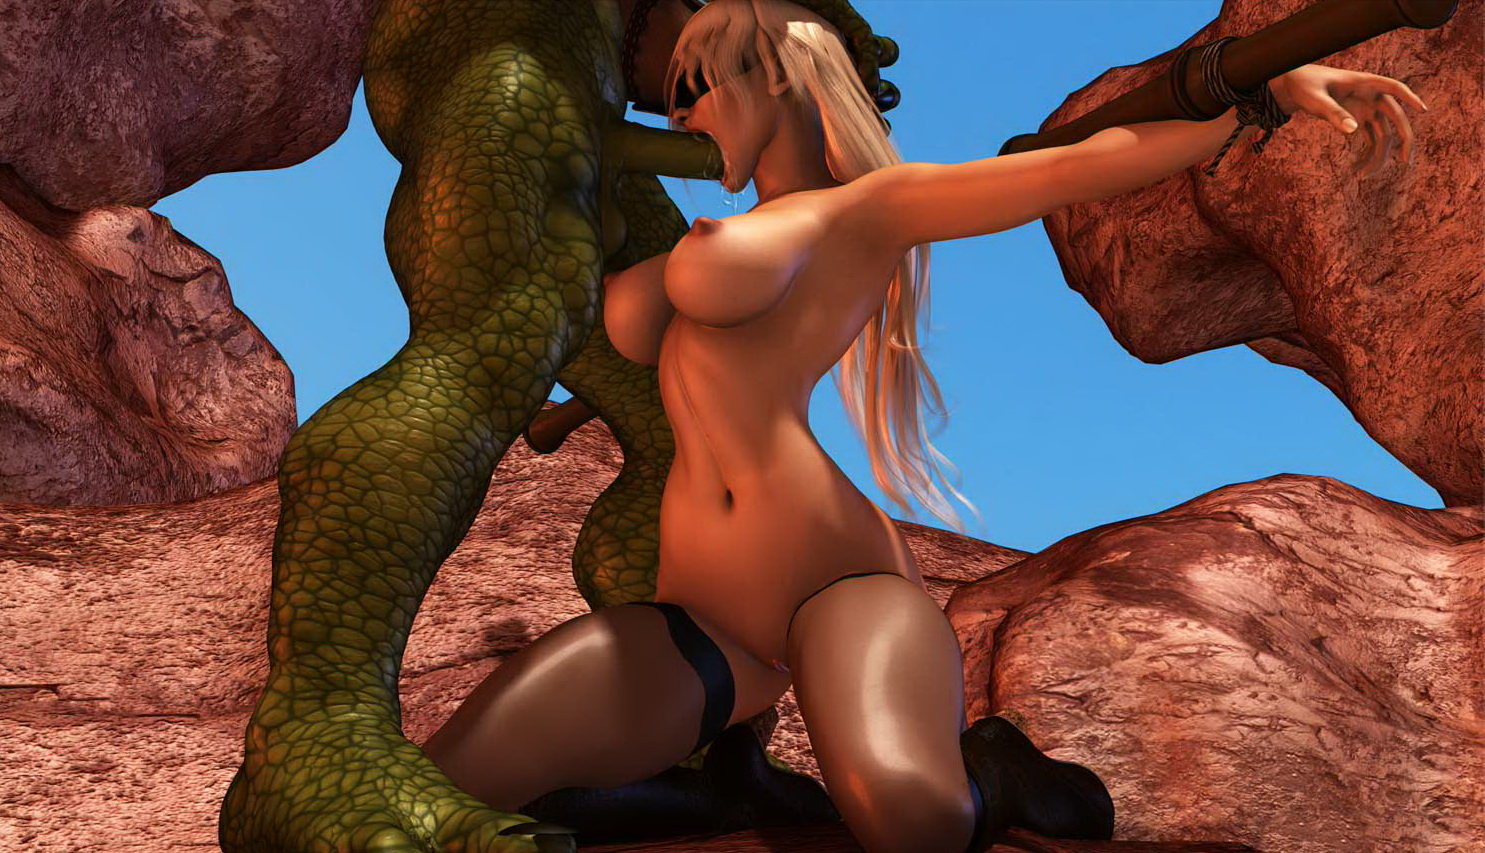 Download monster porn cartoon sex erotic pic